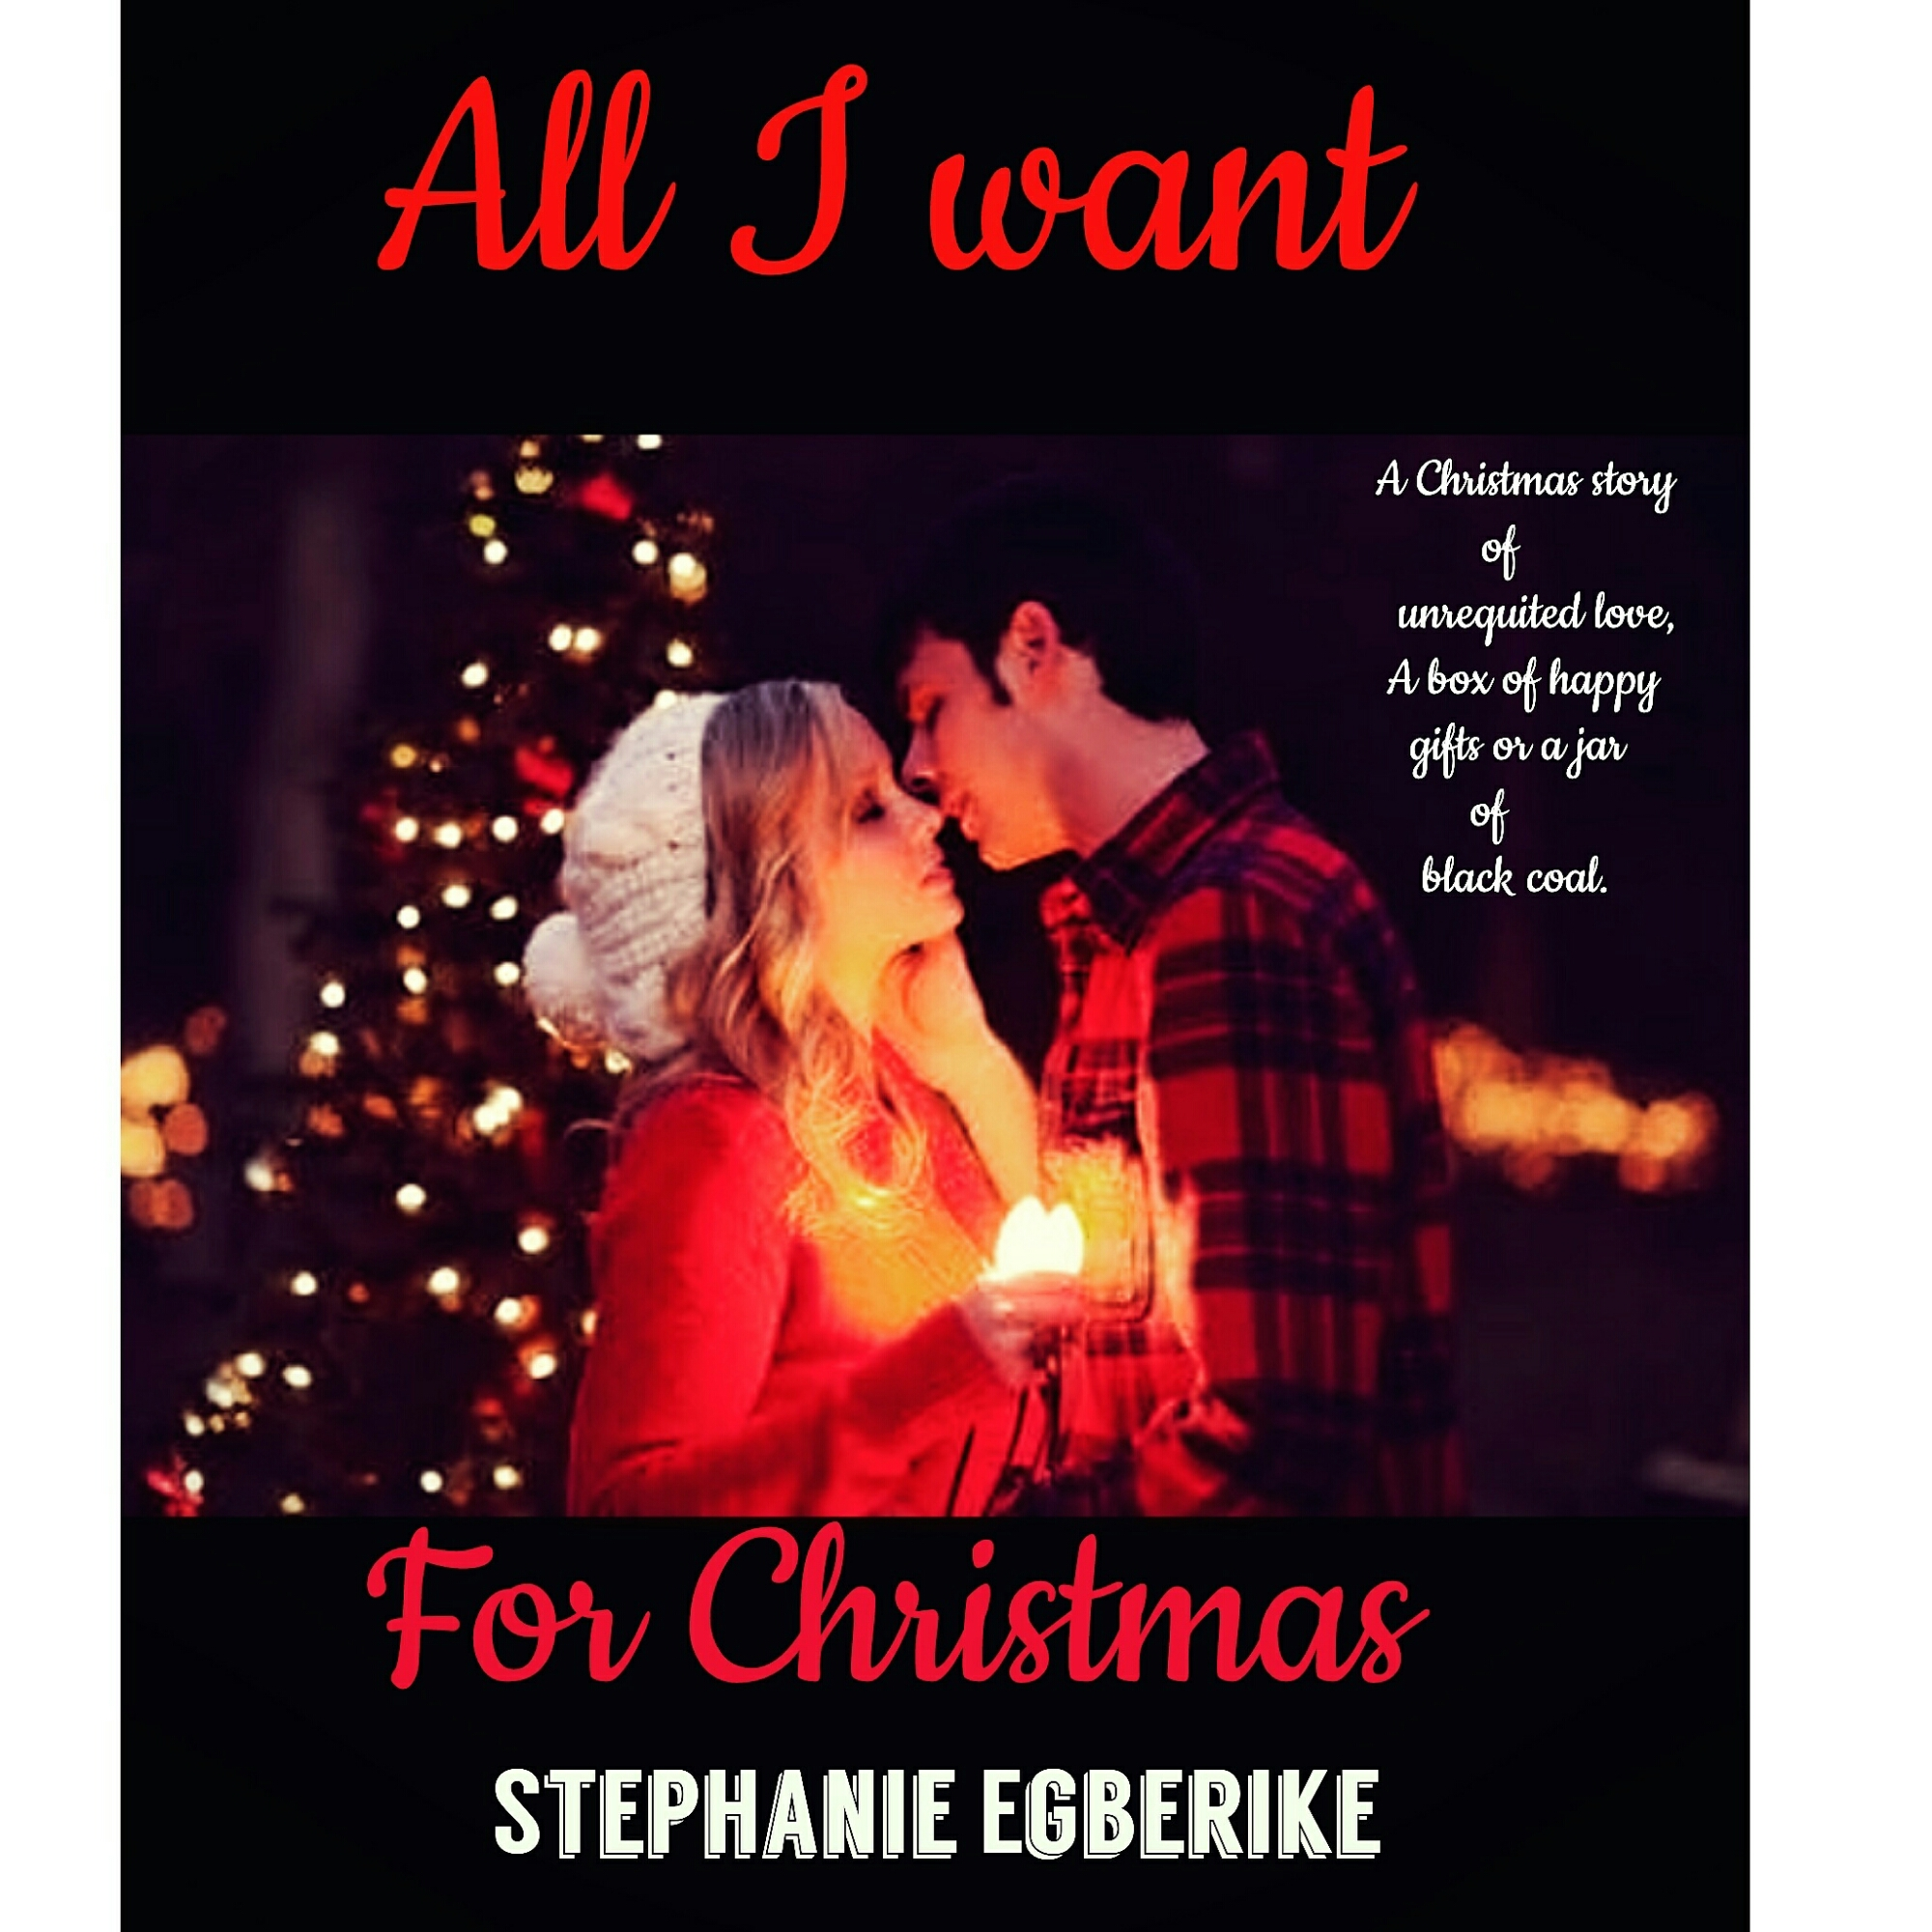 What I want for Christmas (Chp.1)